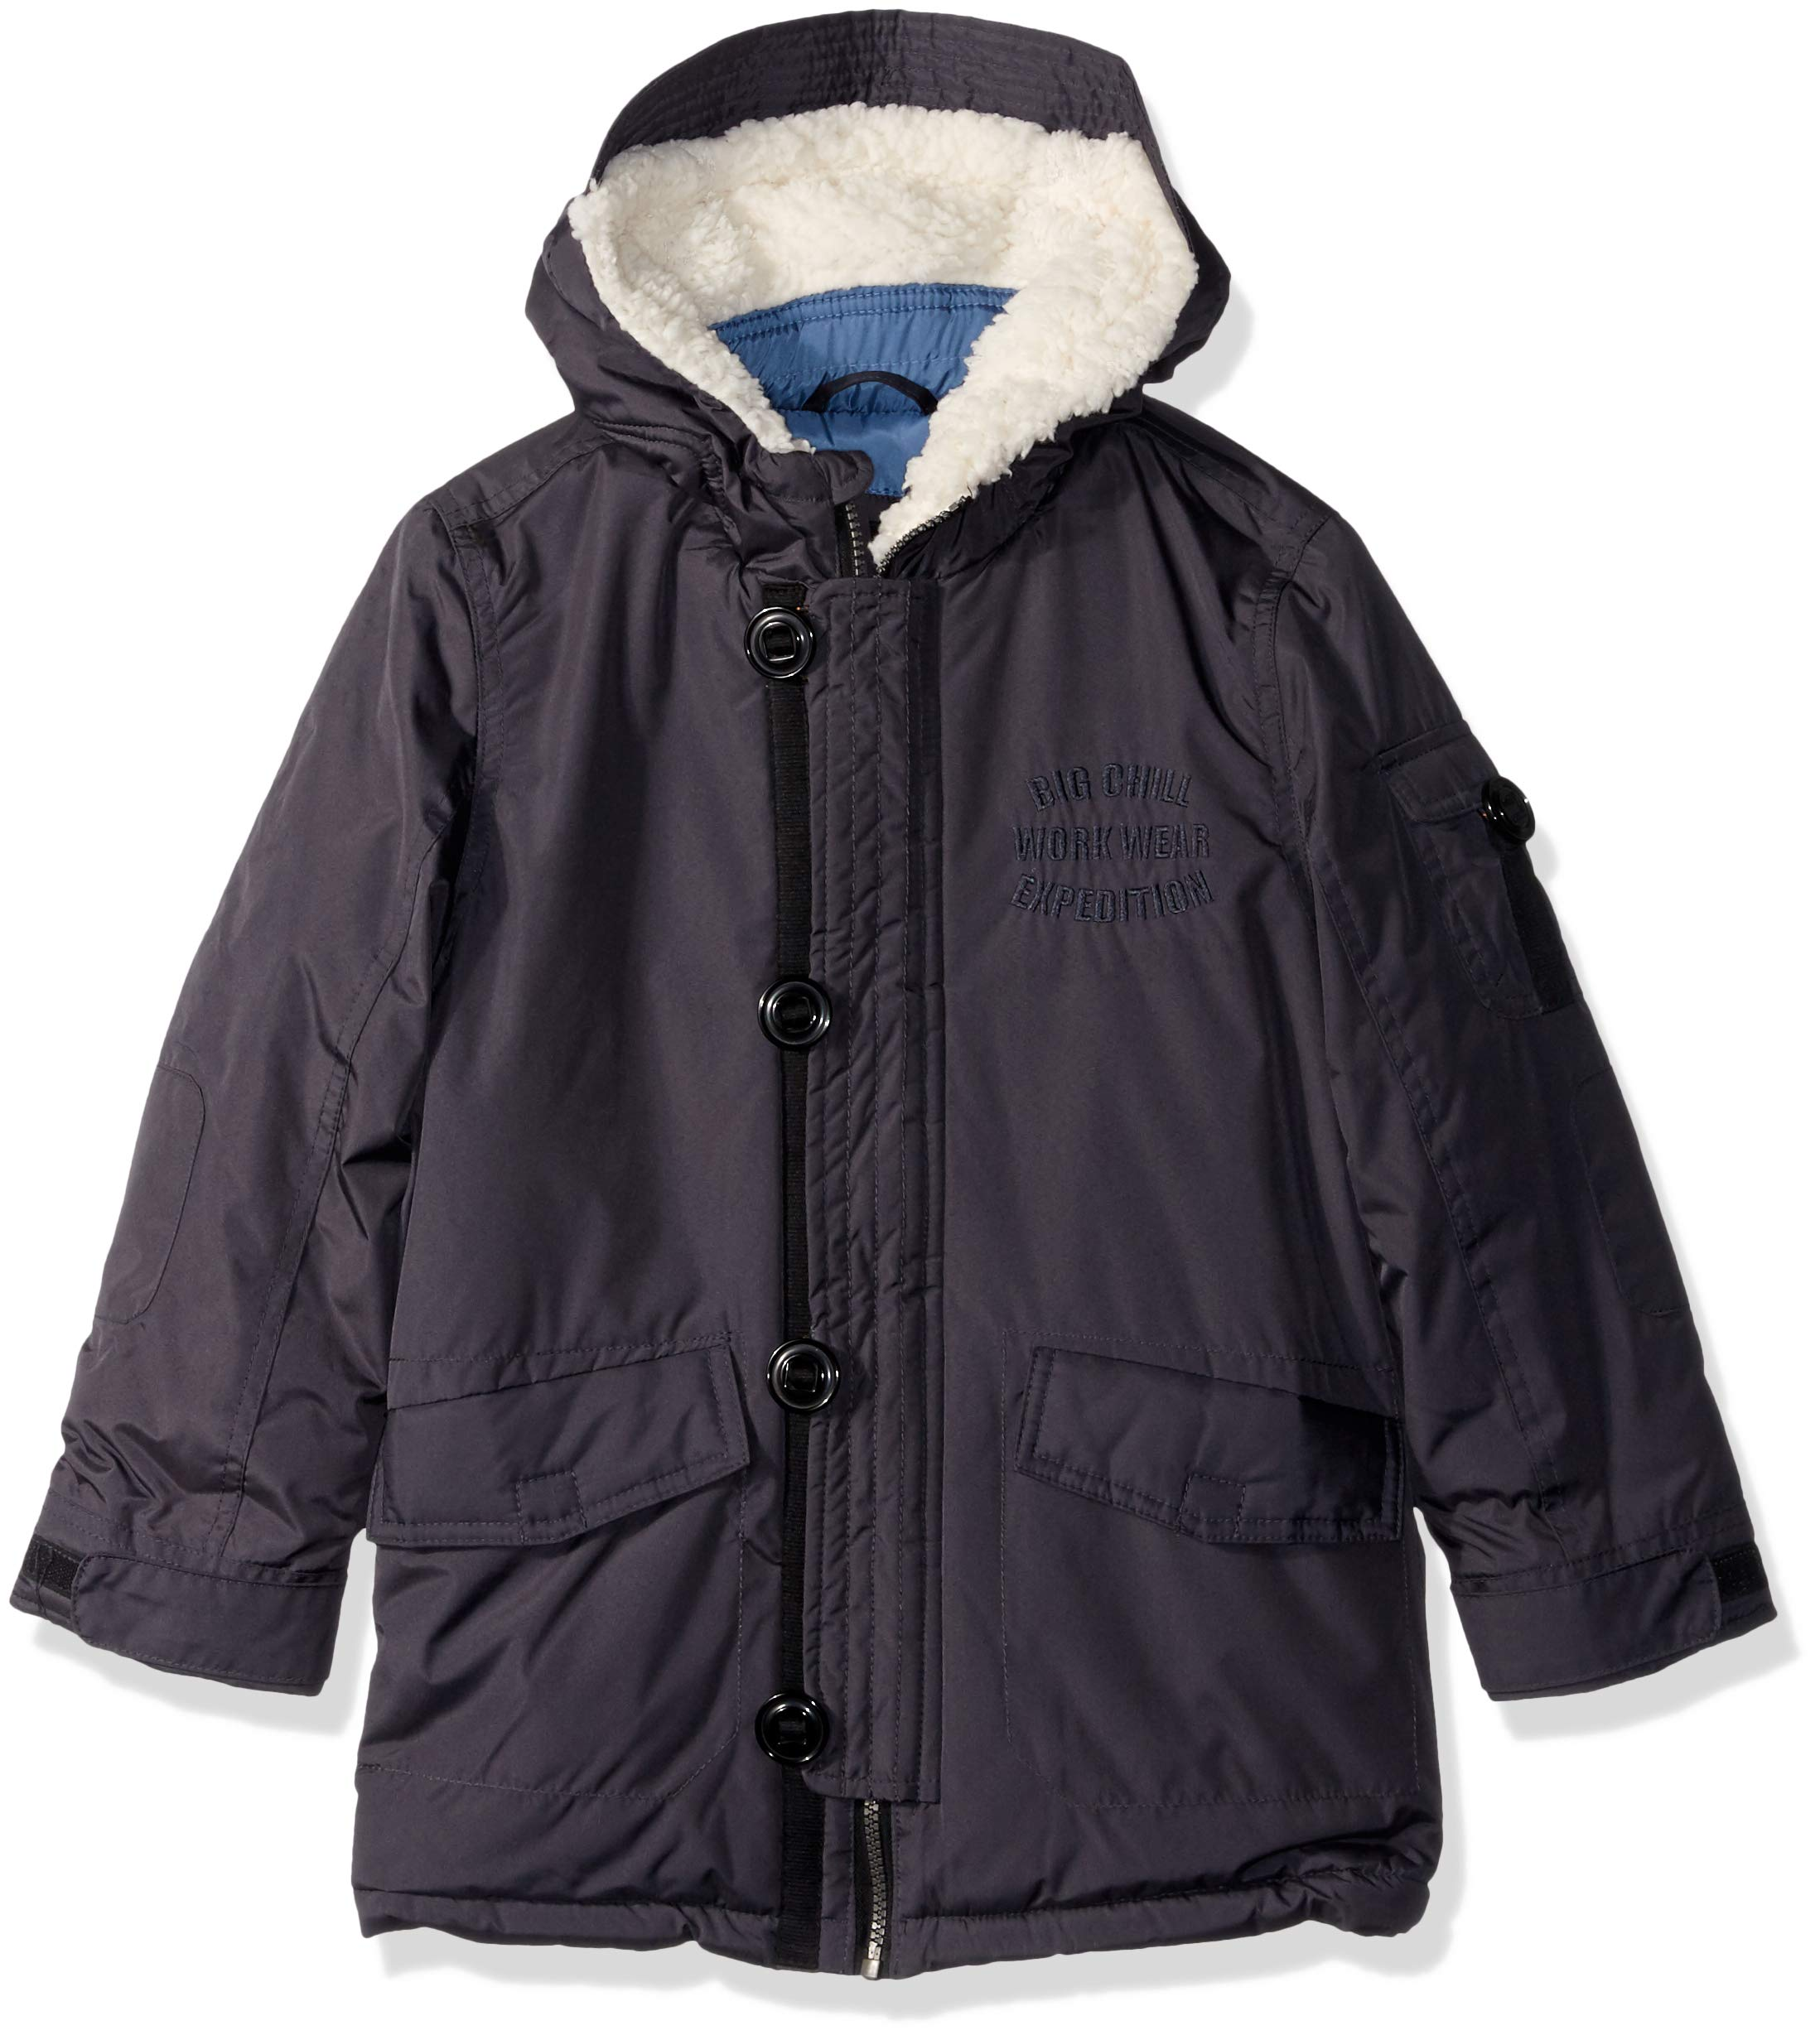 Big Chill Boys' Big' Expedition Jacket, Charcoal, 10/12